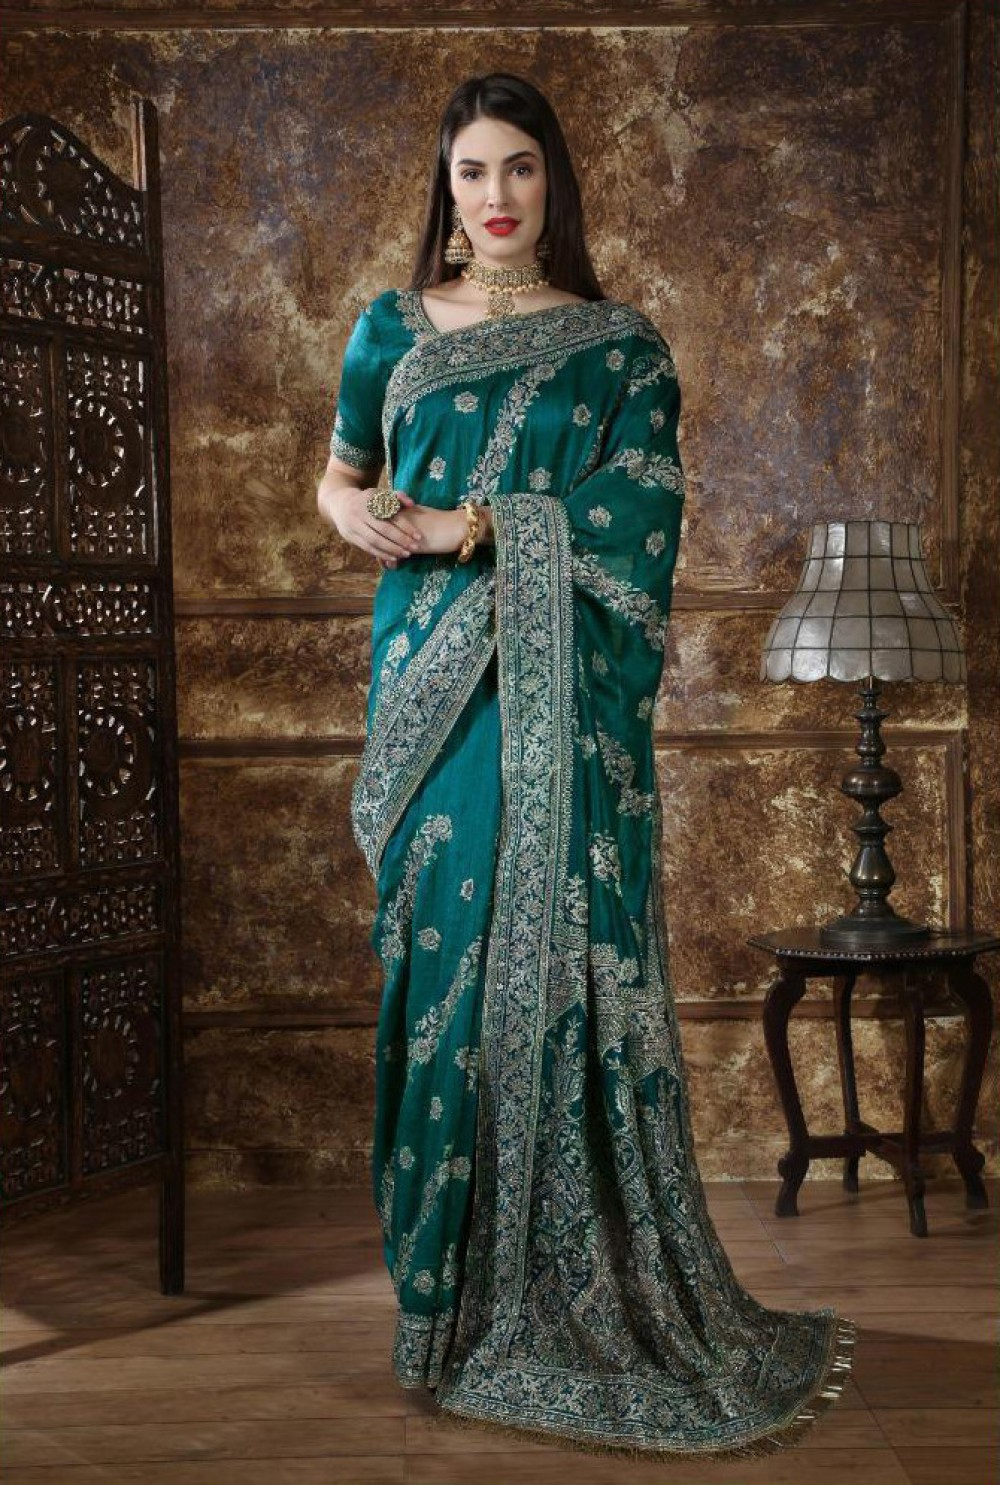 Flamboyant Teal Green Colour Indian Saree